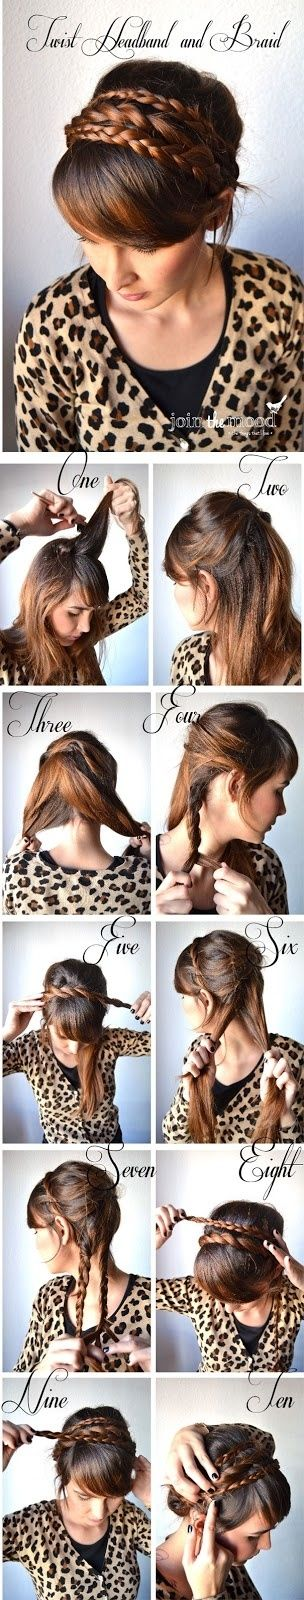 maiden braid tutorial - my hair isn't long enough, but this is something I could probably get your hair to do, Lianna?